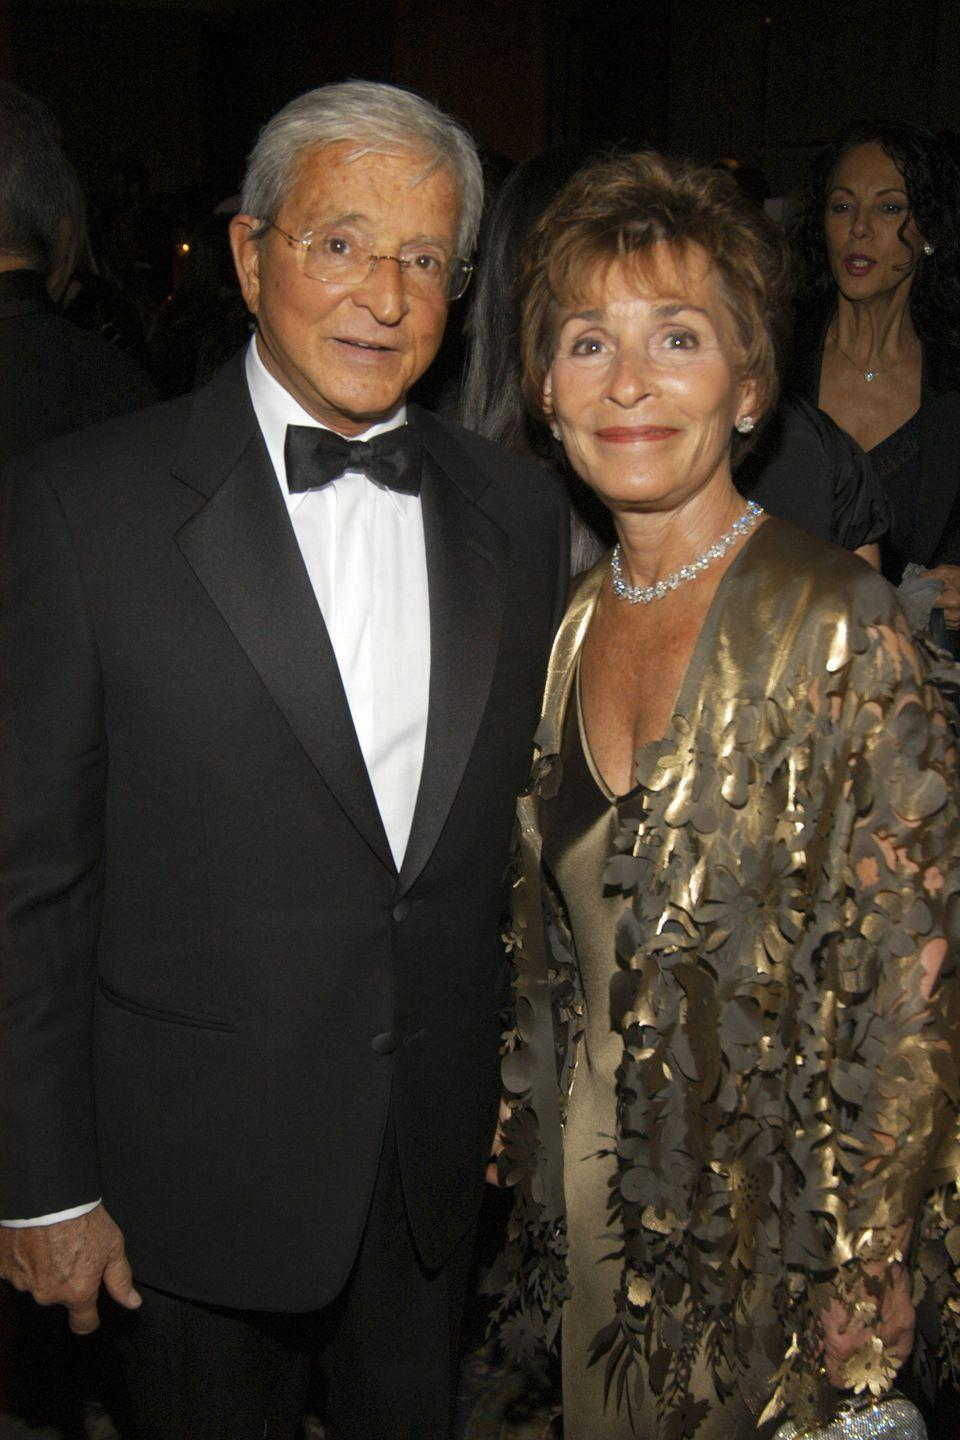 """<p>Judge Judy Sheindlin met her husband, Jerry Sheindlin, <a href=""""https://www.countryliving.com/life/entertainment/a27815965/judge-judy-sheindlin-husband-jerry-sheindlin-marriage-divorce-kids/"""" rel=""""nofollow noopener"""" target=""""_blank"""" data-ylk=""""slk:while working as a prosecutor"""" class=""""link rapid-noclick-resp"""">while working as a prosecutor</a>. The couple married in 1976 and had three children, but after 14 years, the couple divorced in 1990. They didn't stay apart for too long, remarrying a year later, and they've been together ever since. """"I missed Jerry,"""" Judge Judy told <a href=""""https://www.closerweekly.com/posts/judge-judy-husband-jerry-sheindlin-marriage-143331/"""" rel=""""nofollow noopener"""" target=""""_blank"""" data-ylk=""""slk:Closer Weekly"""" class=""""link rapid-noclick-resp""""><em>Closer Weekly</em></a>. """"I like to have someone to fuss over. I like to be mated. It's natural for me. I learned the hard way that sometimes what you think makes you happy won't.""""</p>"""